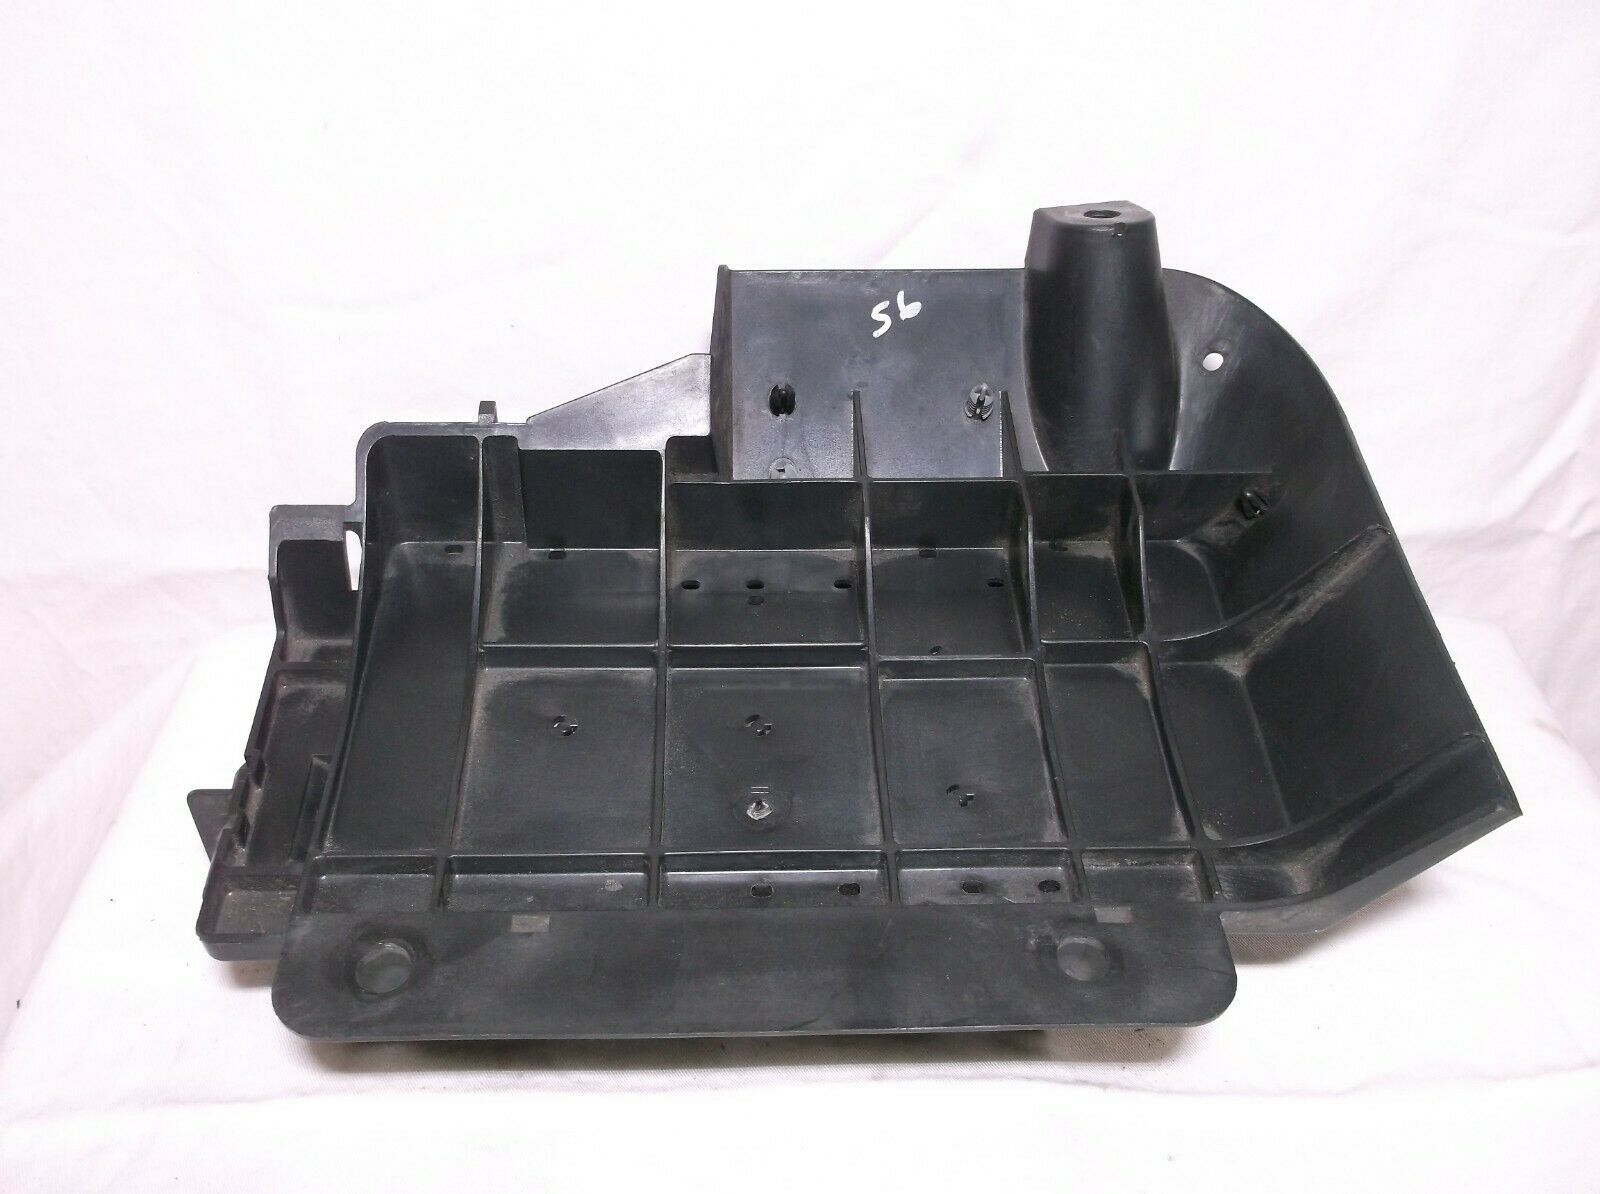 02-03 Gmc Envoy   Bravada   Trailblazer   4 2l   Fuse   Relay   Box Mounting Base